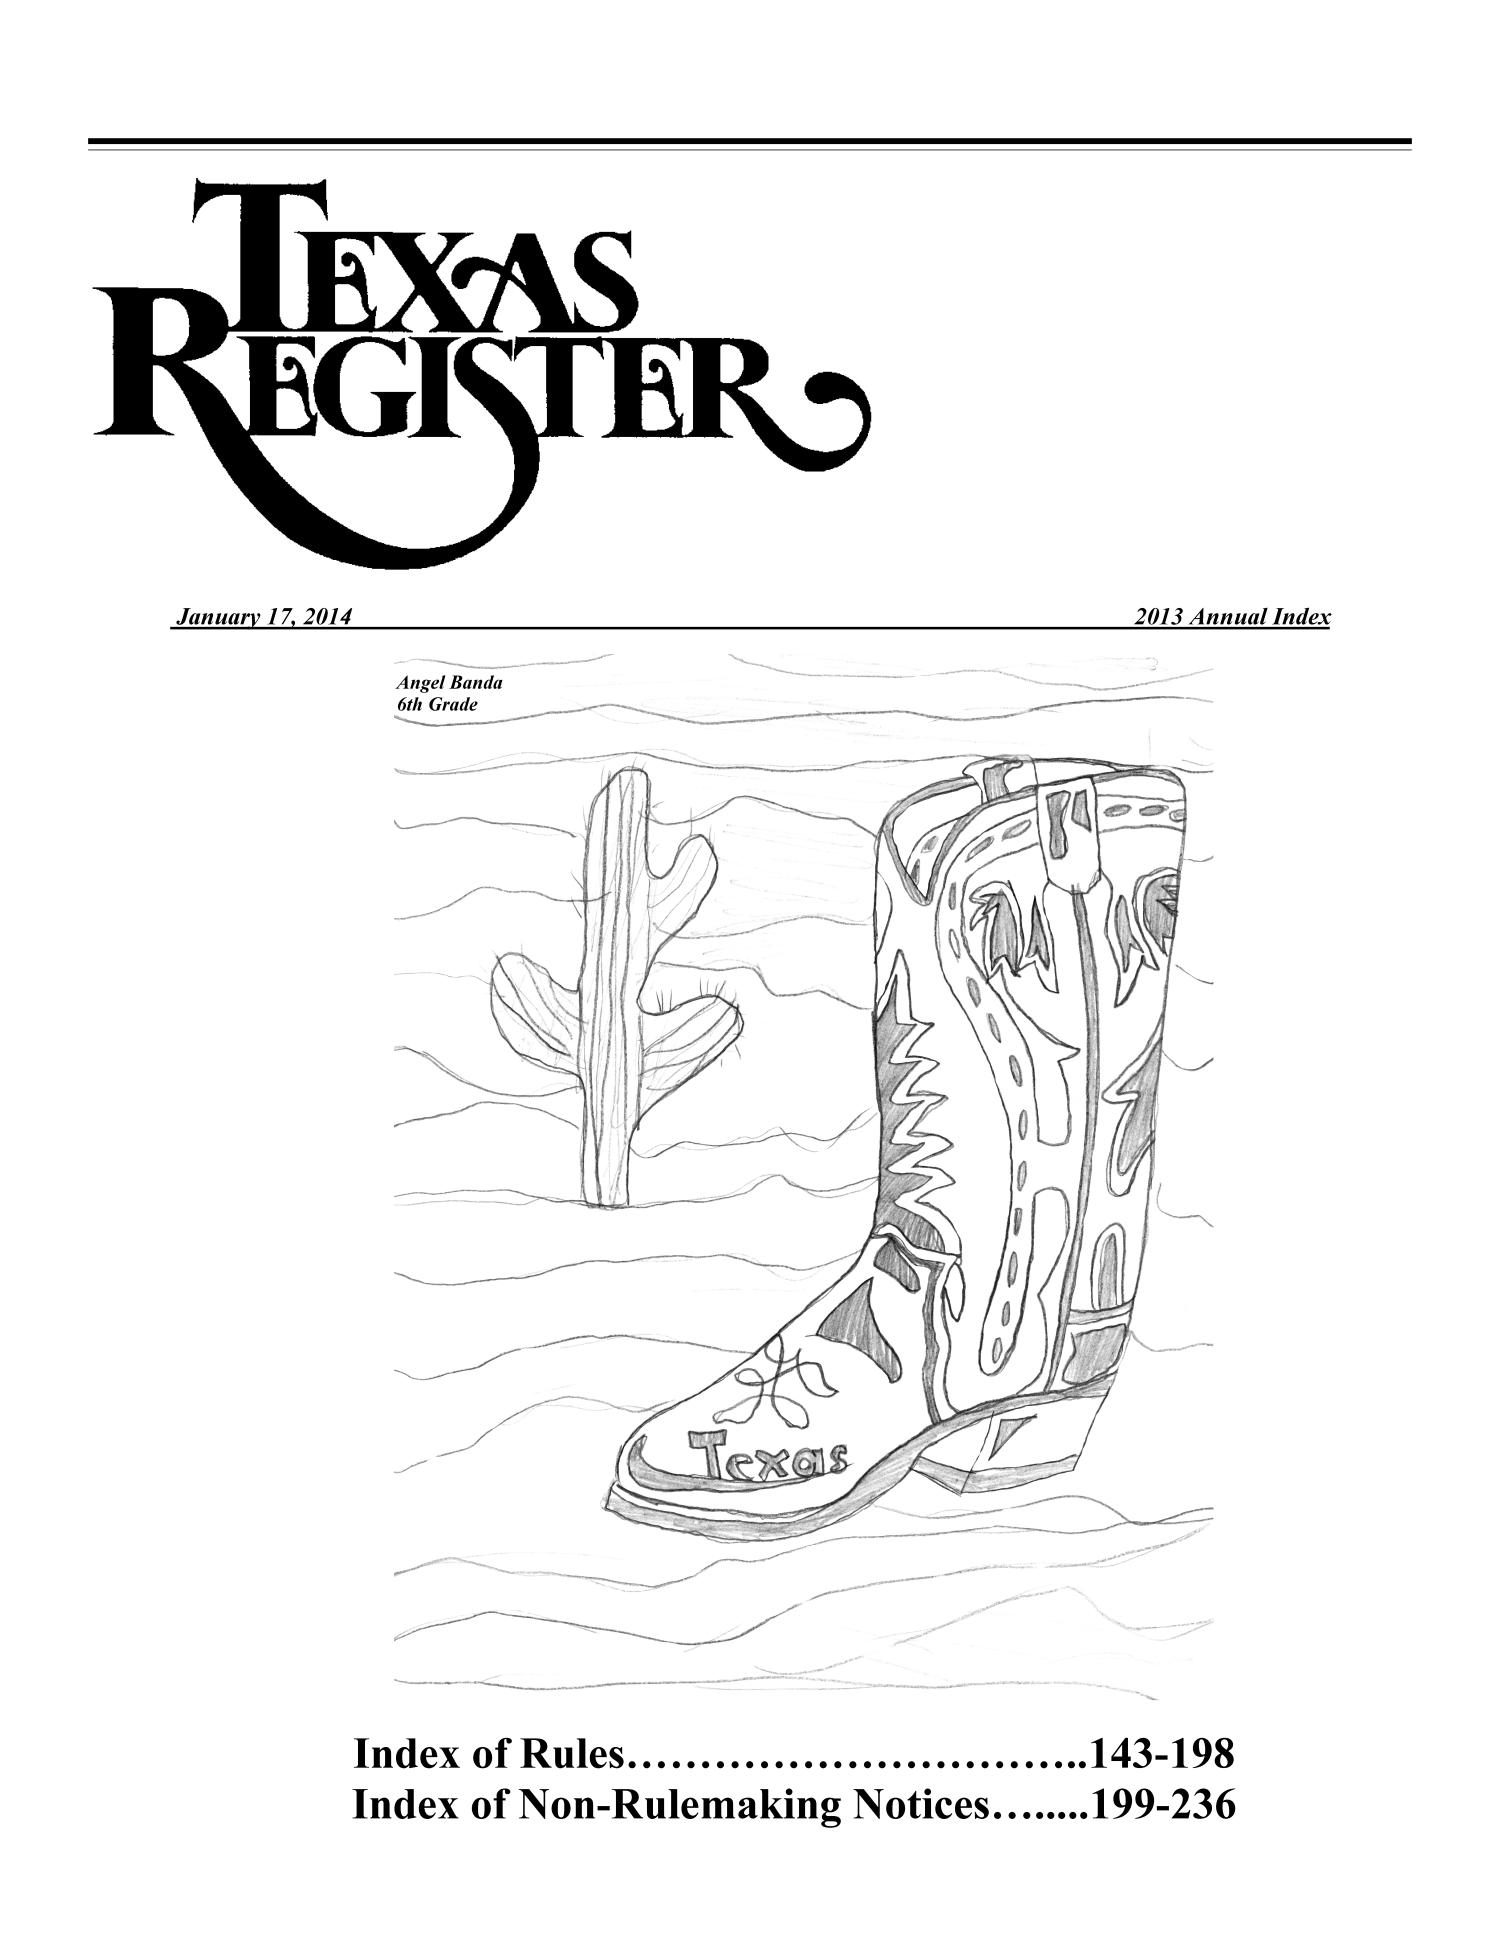 Texas Register, Volume 38, 2013 Annual Index, Pages 143-236, January 17, 2014                                                                                                      Title Page